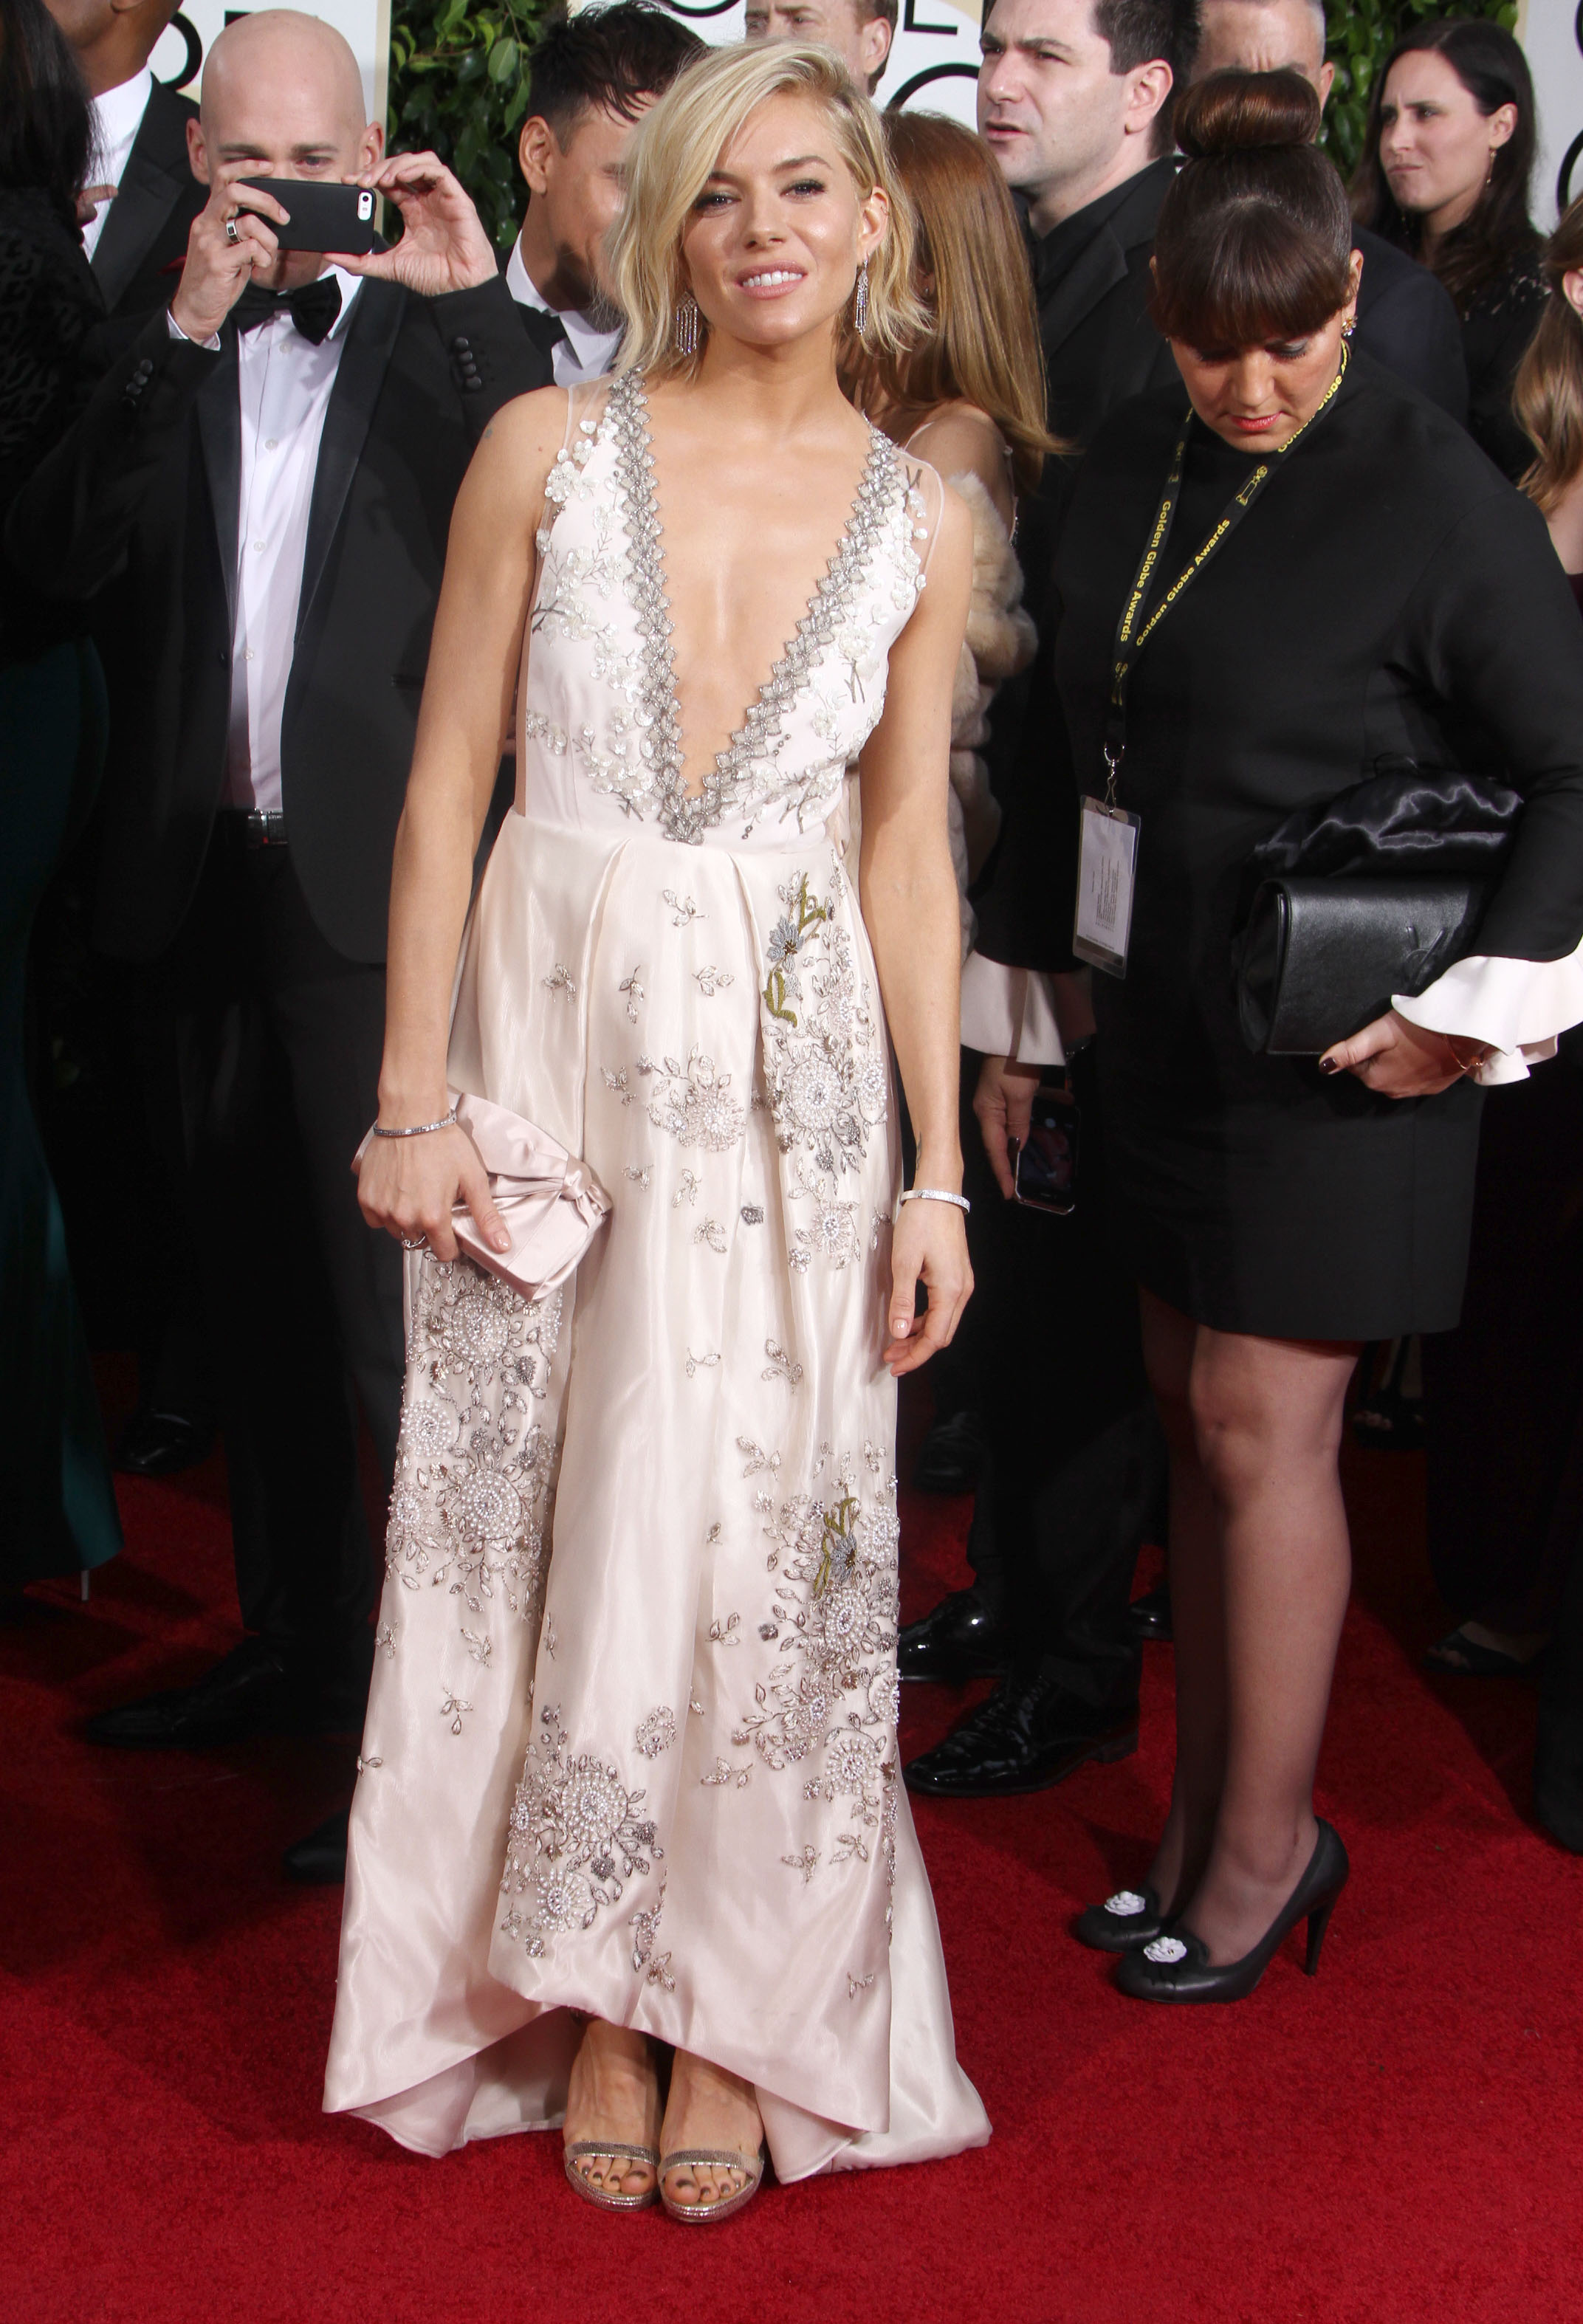 Golden Globes Fug Carpet: Sienna Miller in Miu Miu